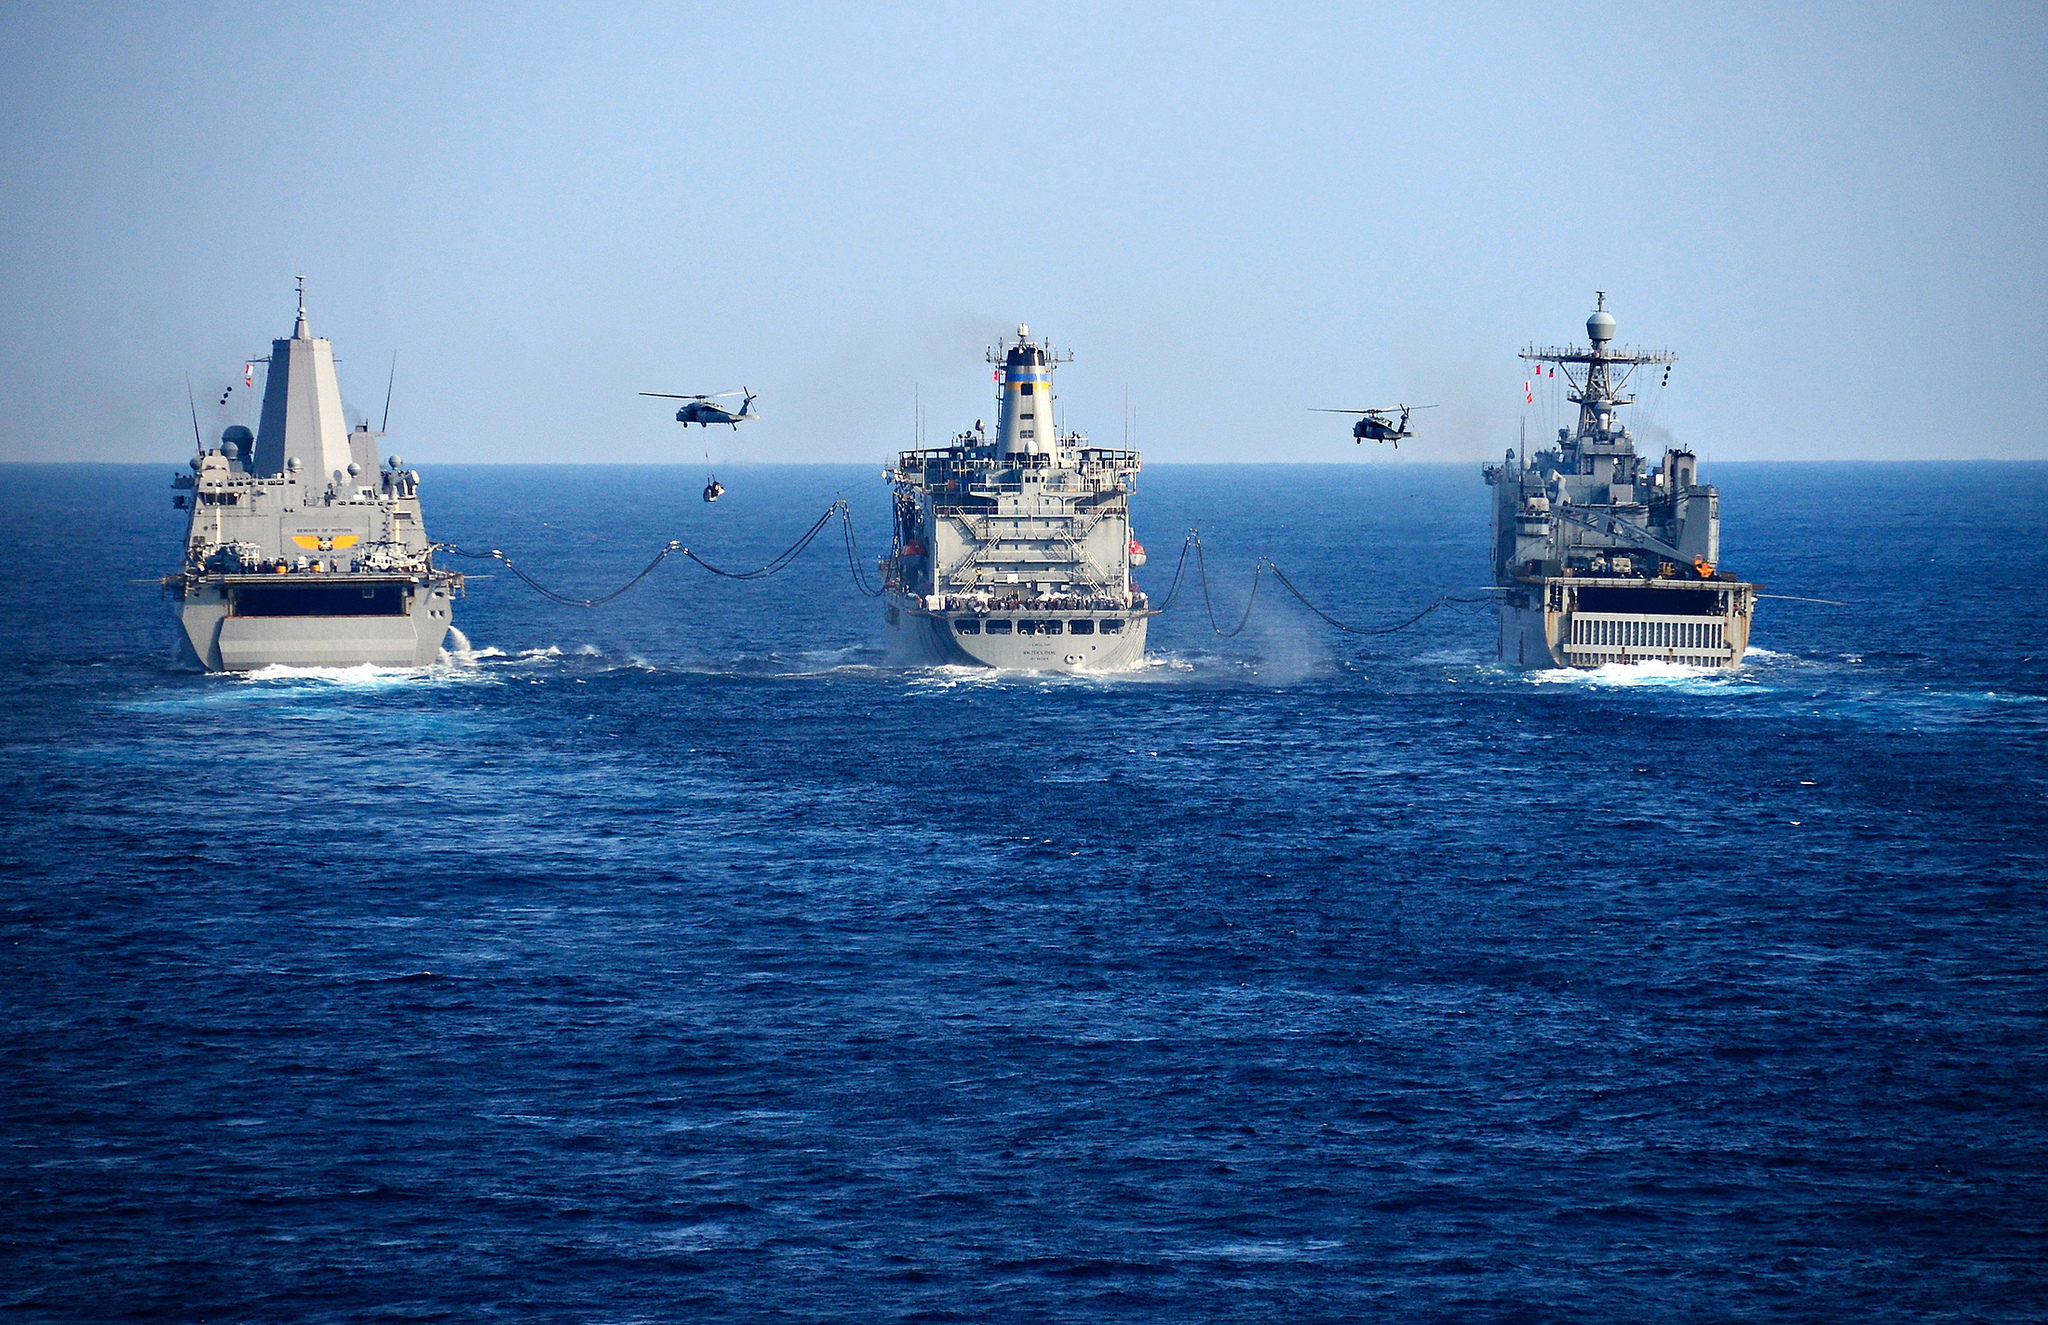 The transport dock ship USS Green Bay (LPD 20), the Military Sealift Command fleet replenishment oiler USNS Walter S. Diehl (T-AO 193), and the amphibious dock landing ship USS Ashland (LSD 48) conduct a replenishment-at-sea with MH-60S Seahawk helicopters on Jan. 30, 2019, in the Philippine Sea. (MC1 Daniel Barker/Navy)